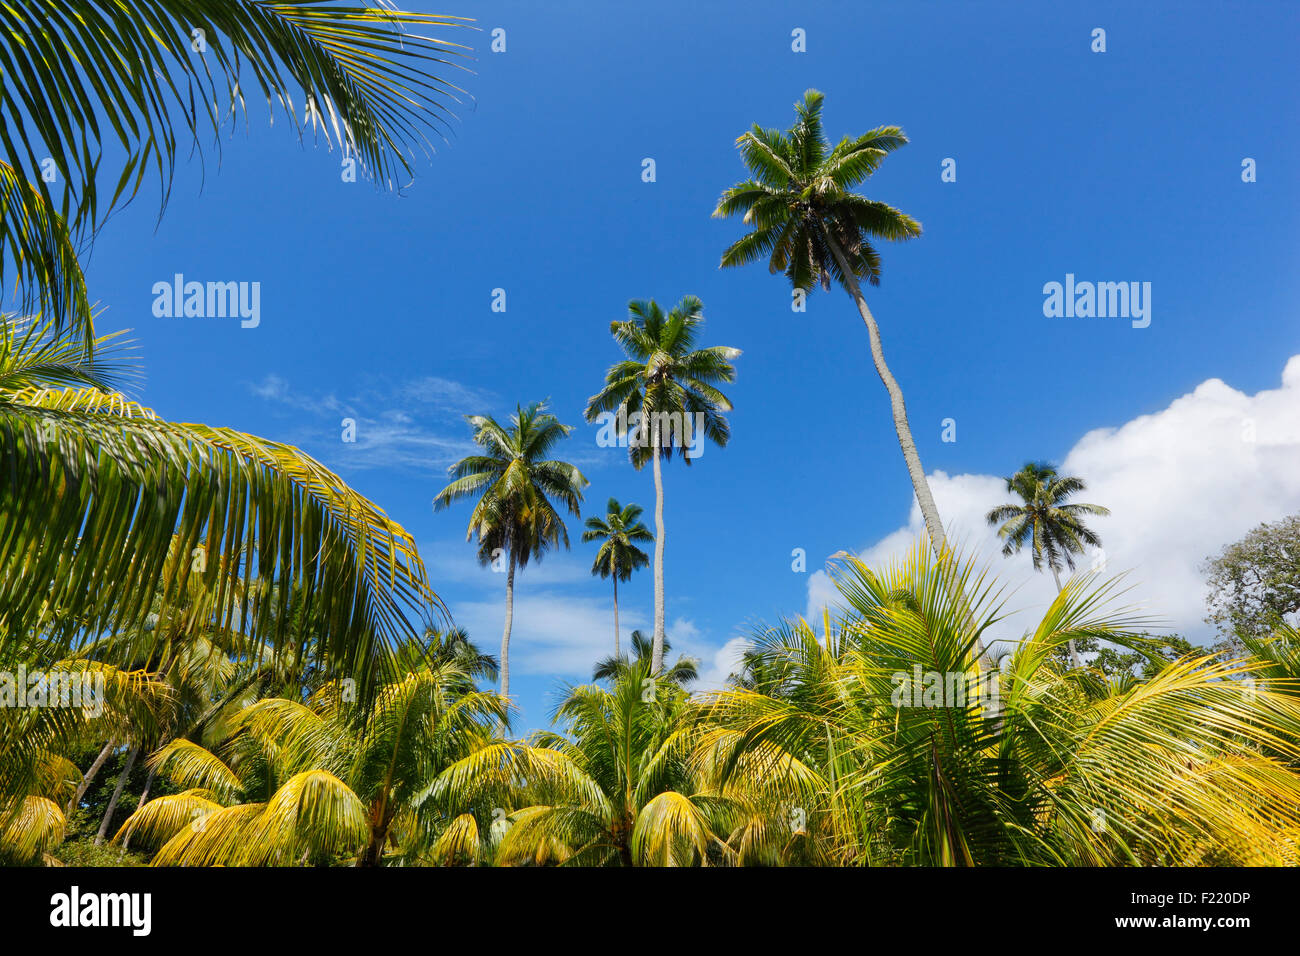 Palm trees in national park on island La Digue, Seychelles. Stock Photo